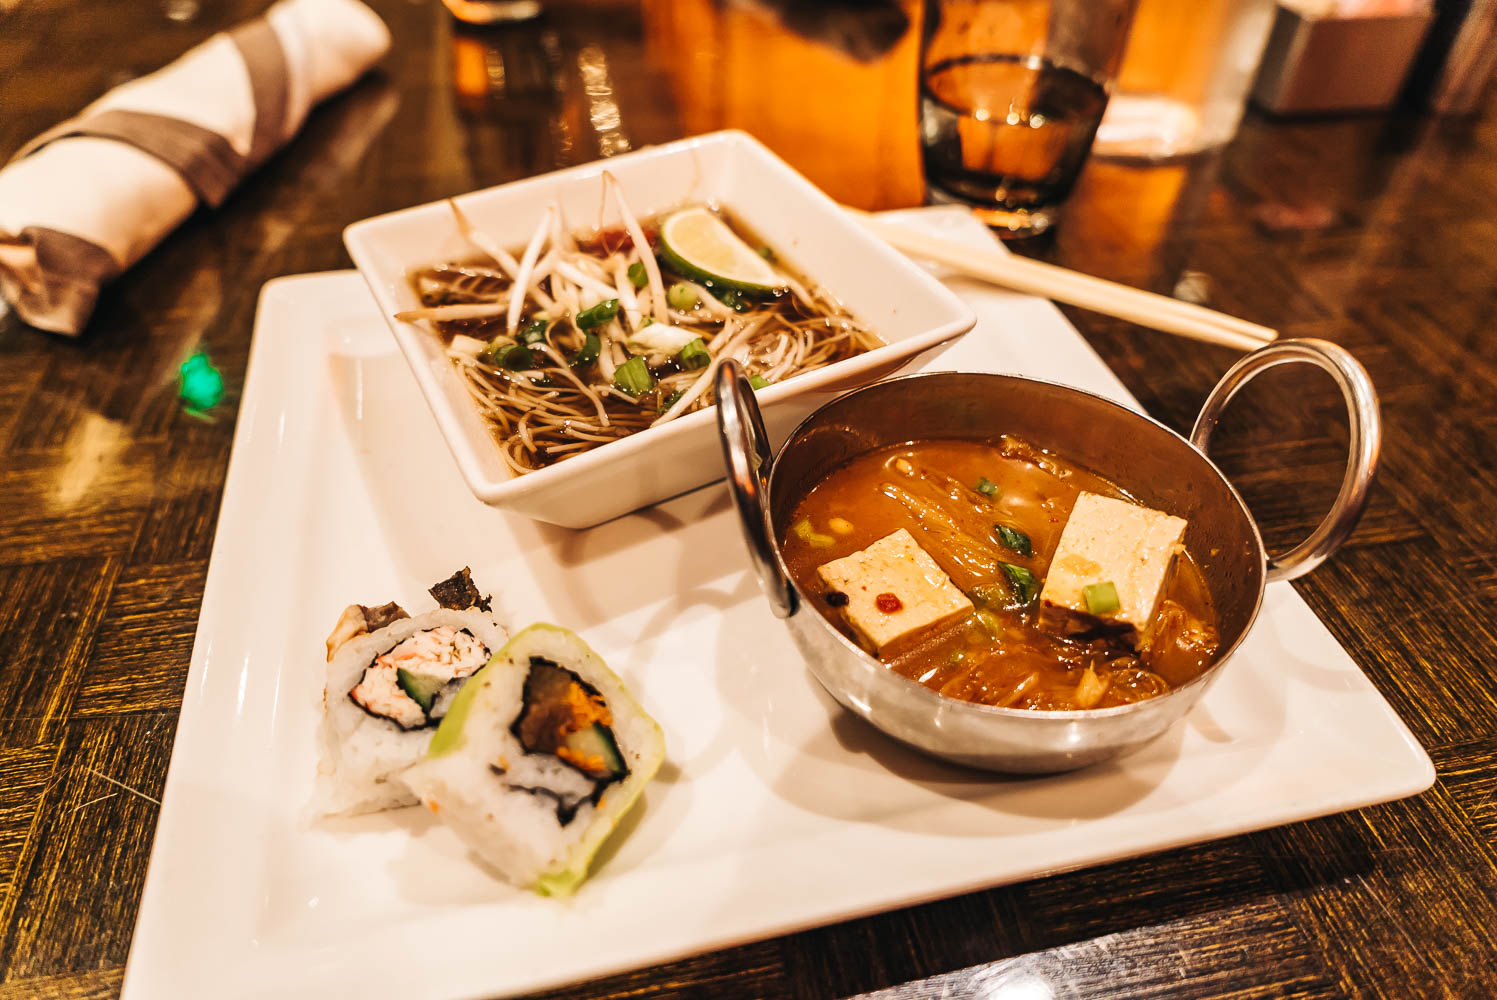 ASIAN CUISINE FROM BRUNCH AT THE WICKED SPOON: SUSHI, KIMCHI JJIGAE, & PHÓ